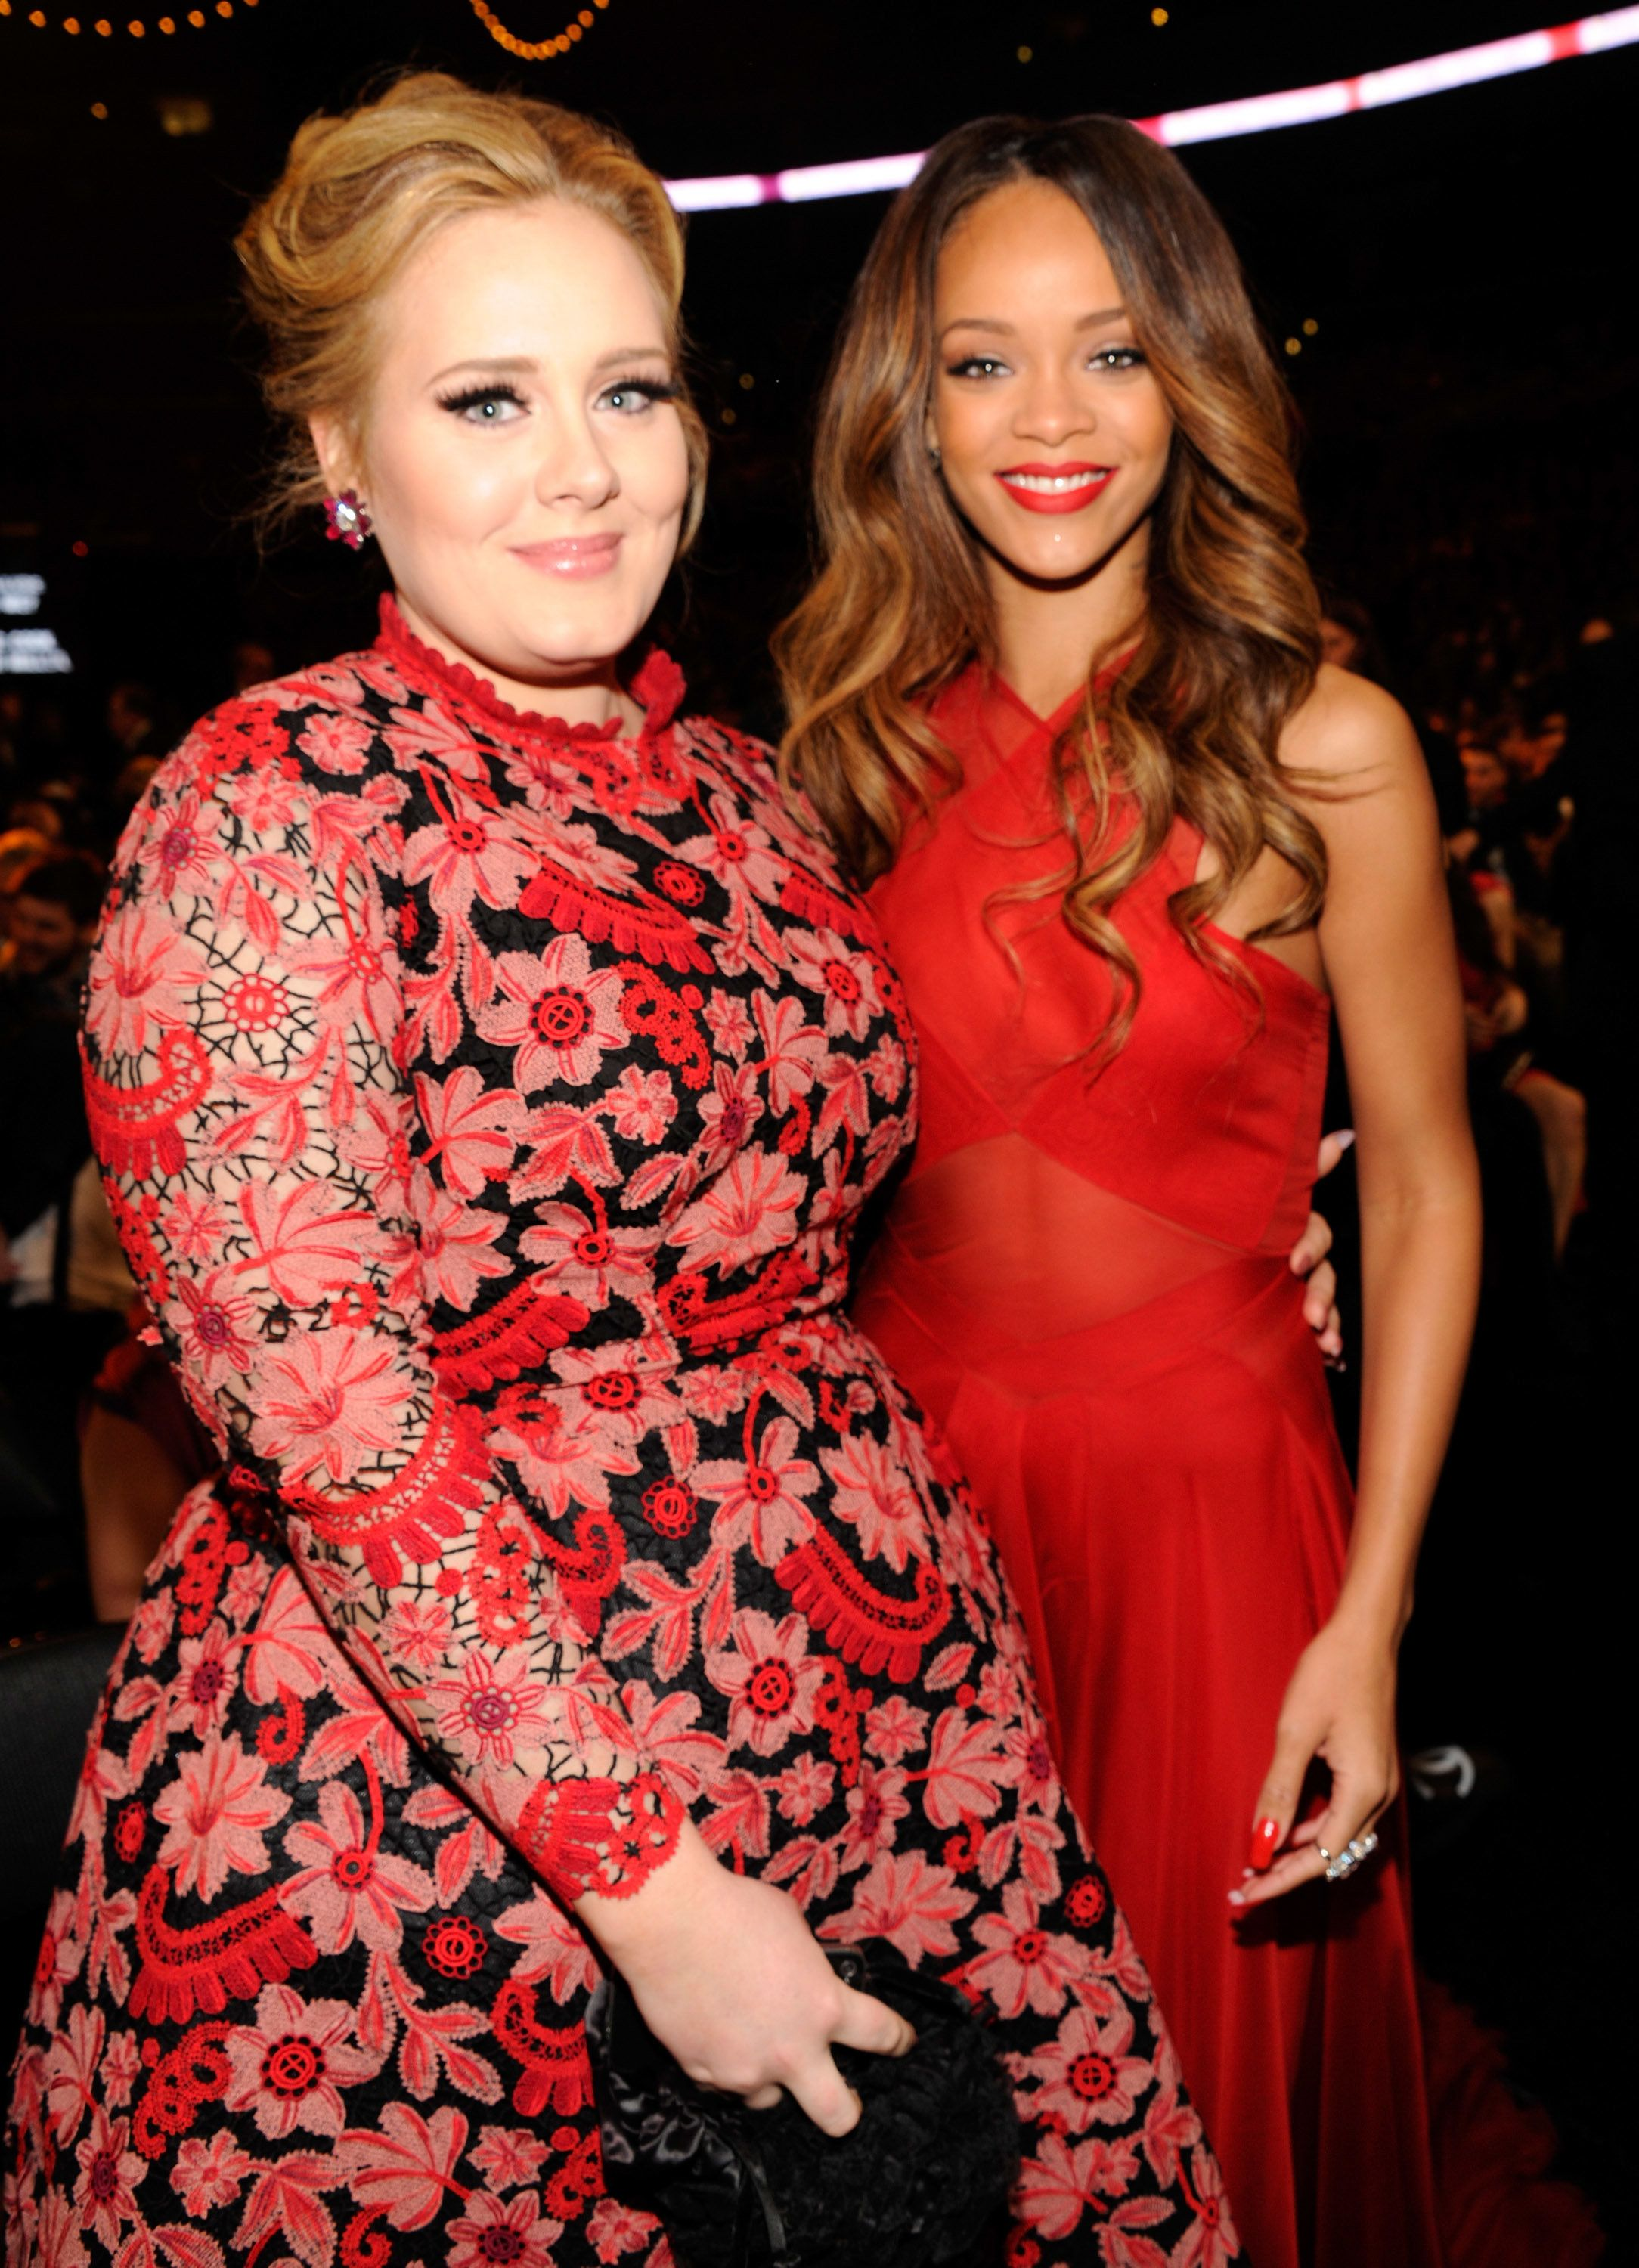 LOS ANGELES, CA - FEBRUARY 10:  Adele and Rihanna attend the 55th Annual GRAMMY Awards at STAPLES Center on February 10, 2013 in Los Angeles, California.  (Photo by Kevin Mazur/WireImage)